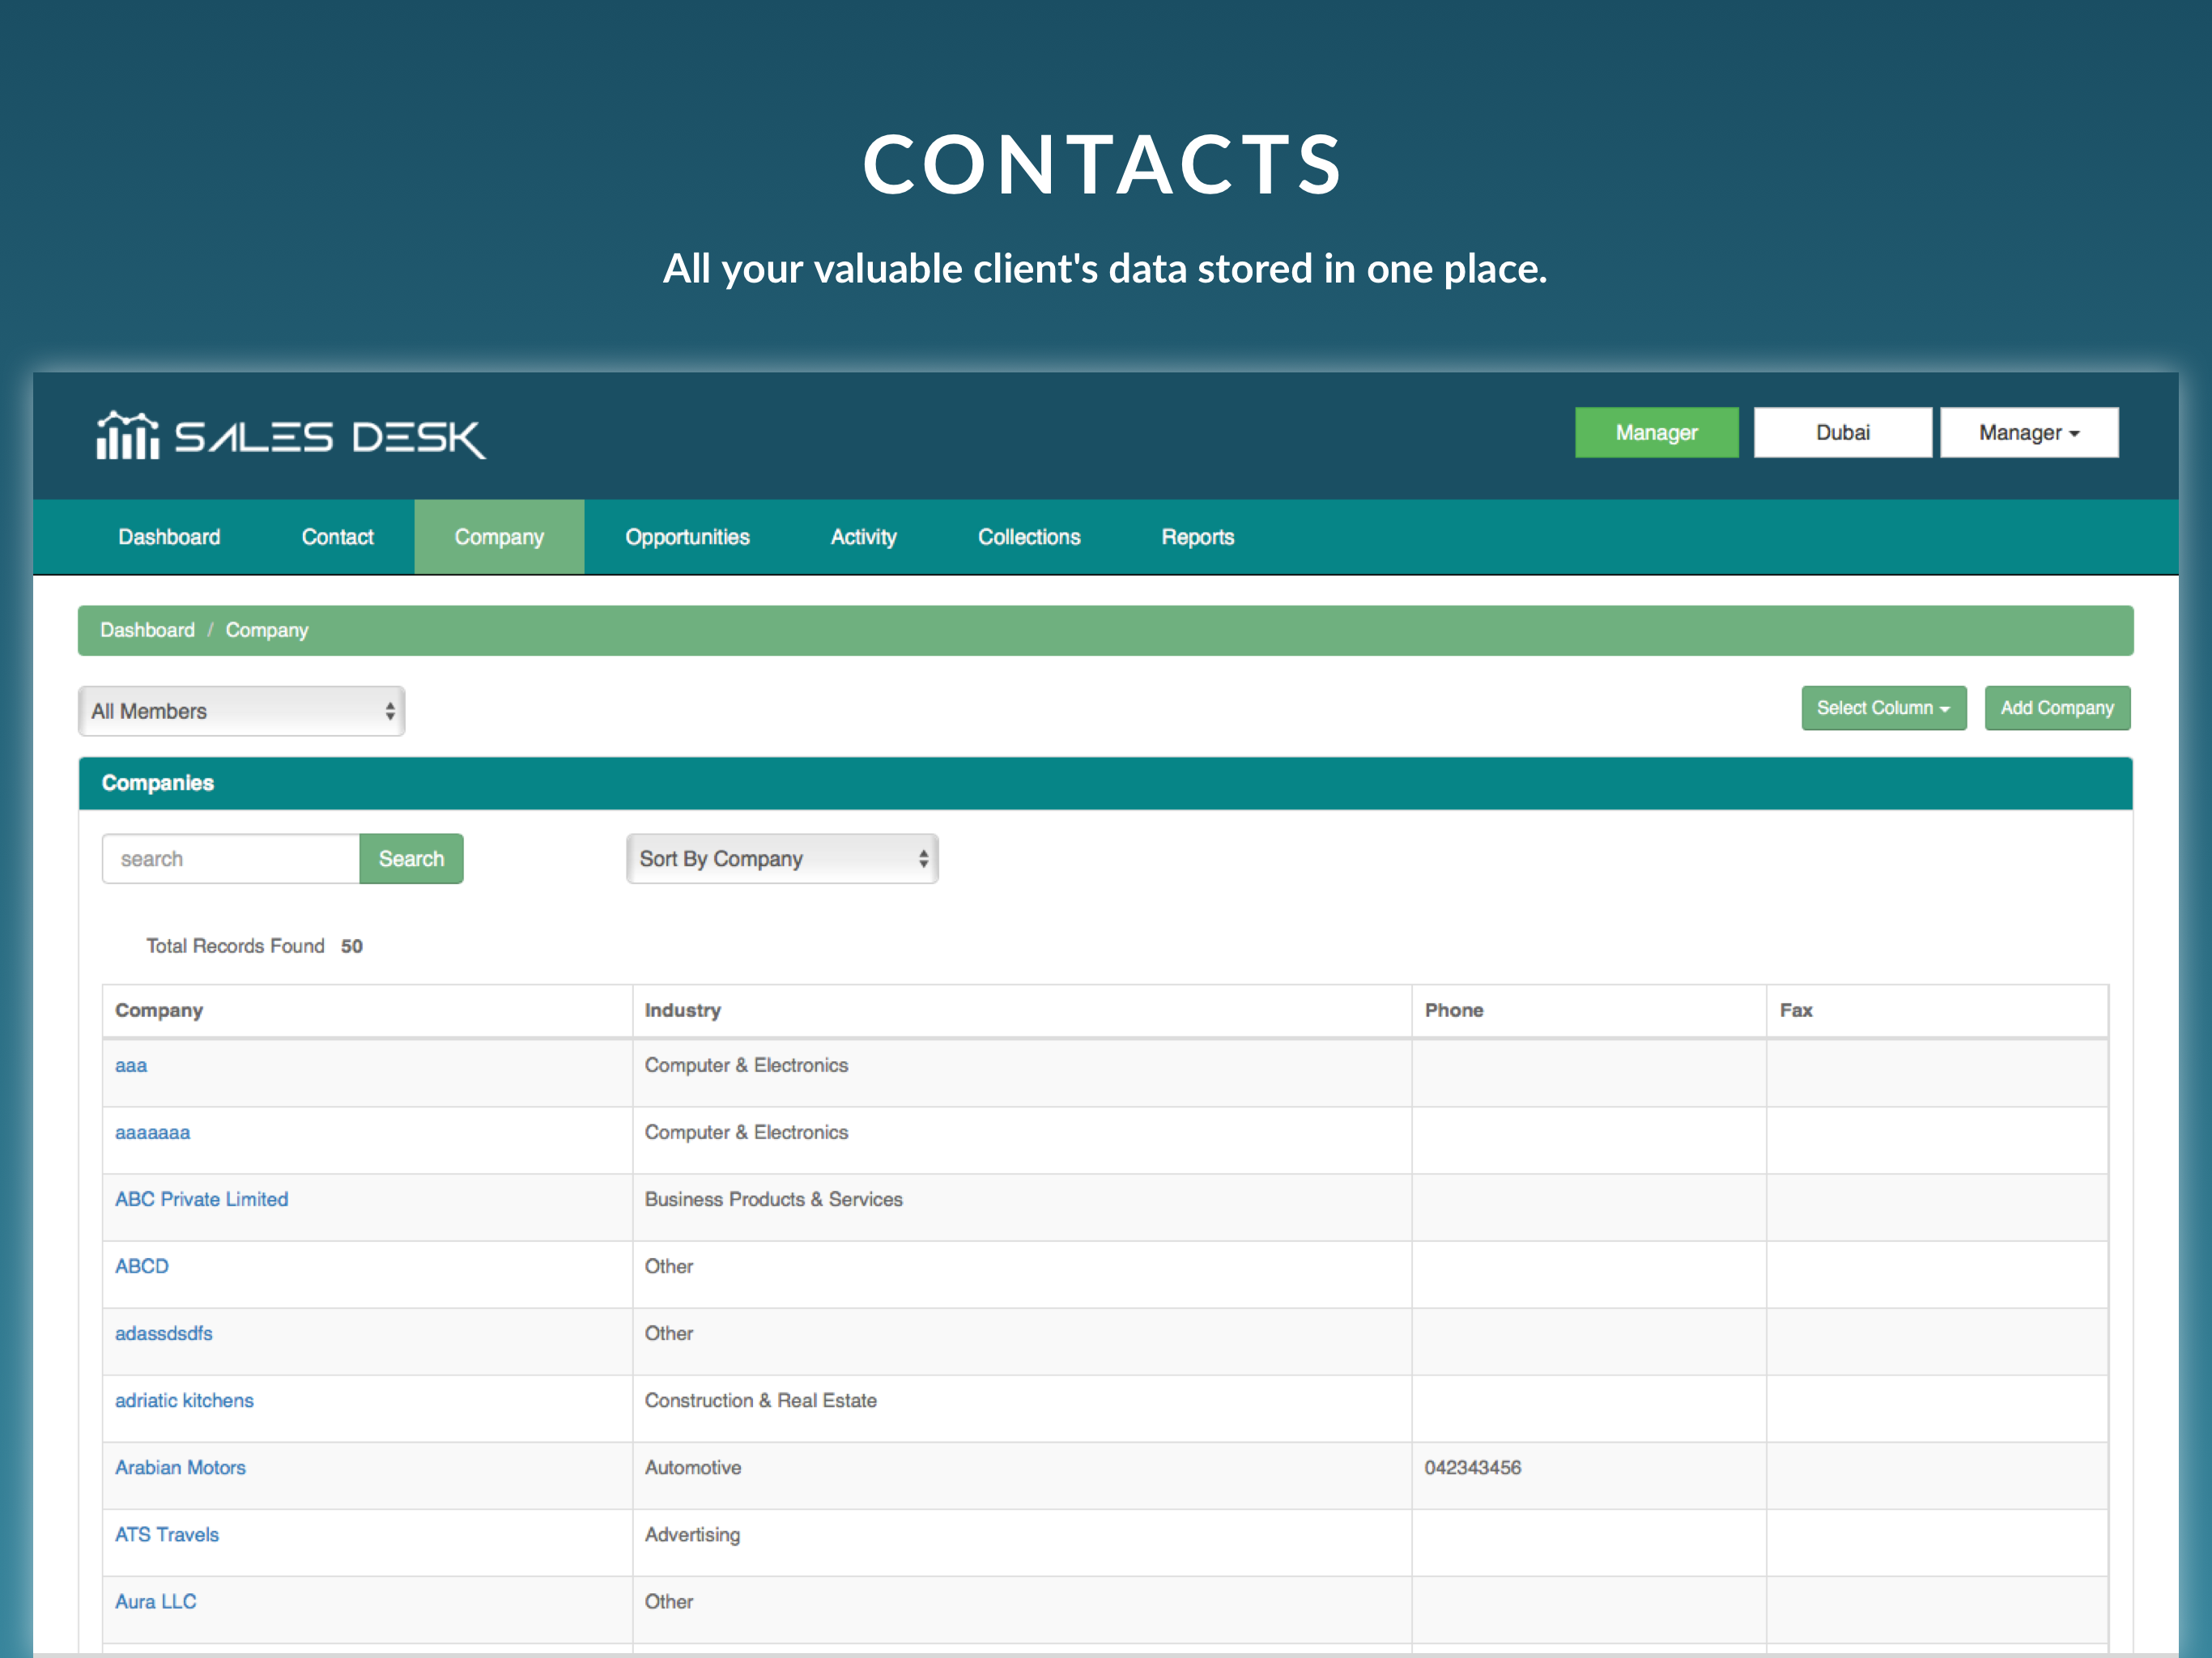 SalesDesk Demo - Contacts